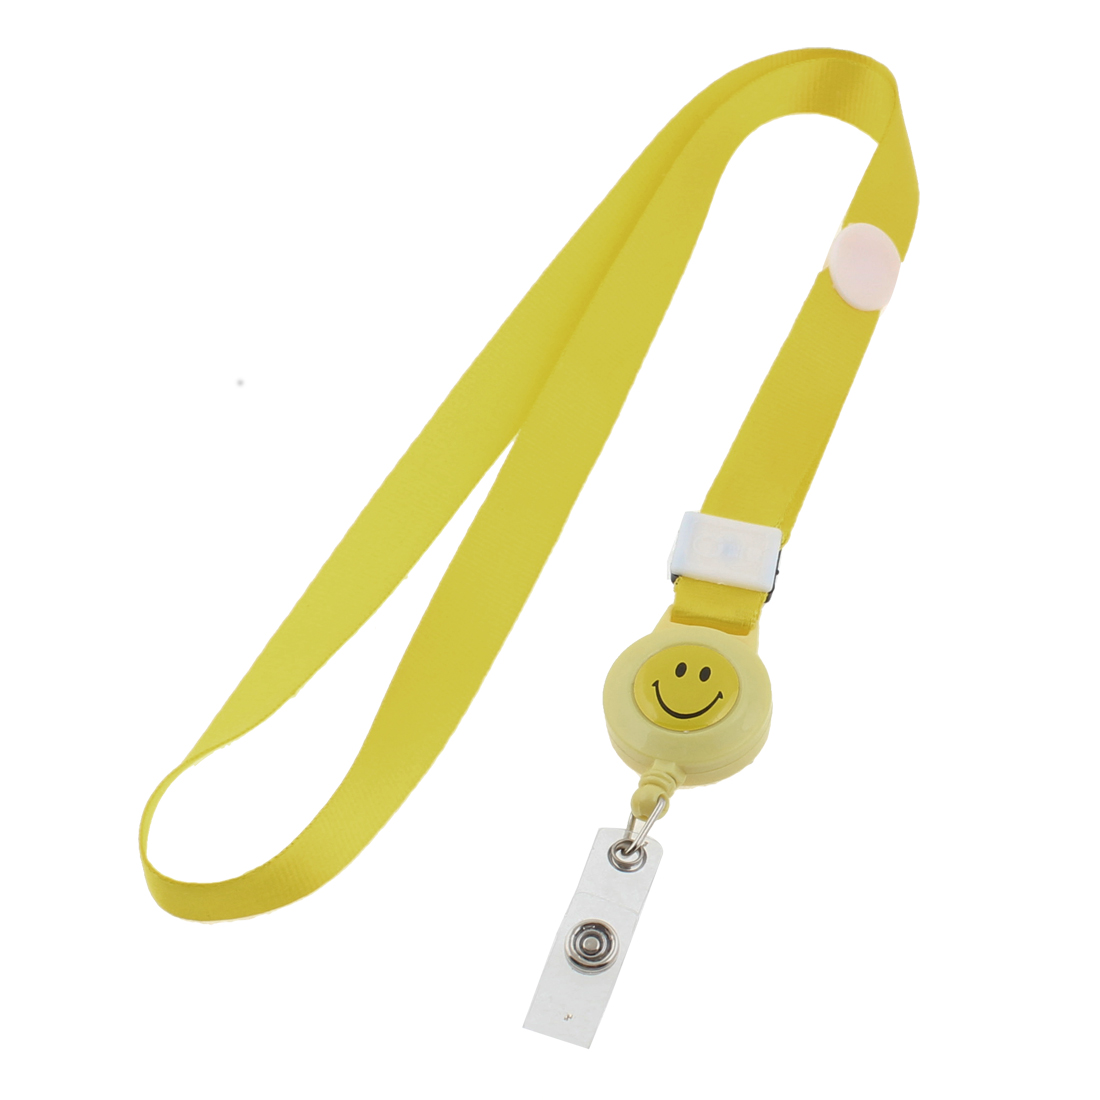 Smile Face Pattern Name Company Badge Holder ID Card Neck Strap Lanyard Yellow